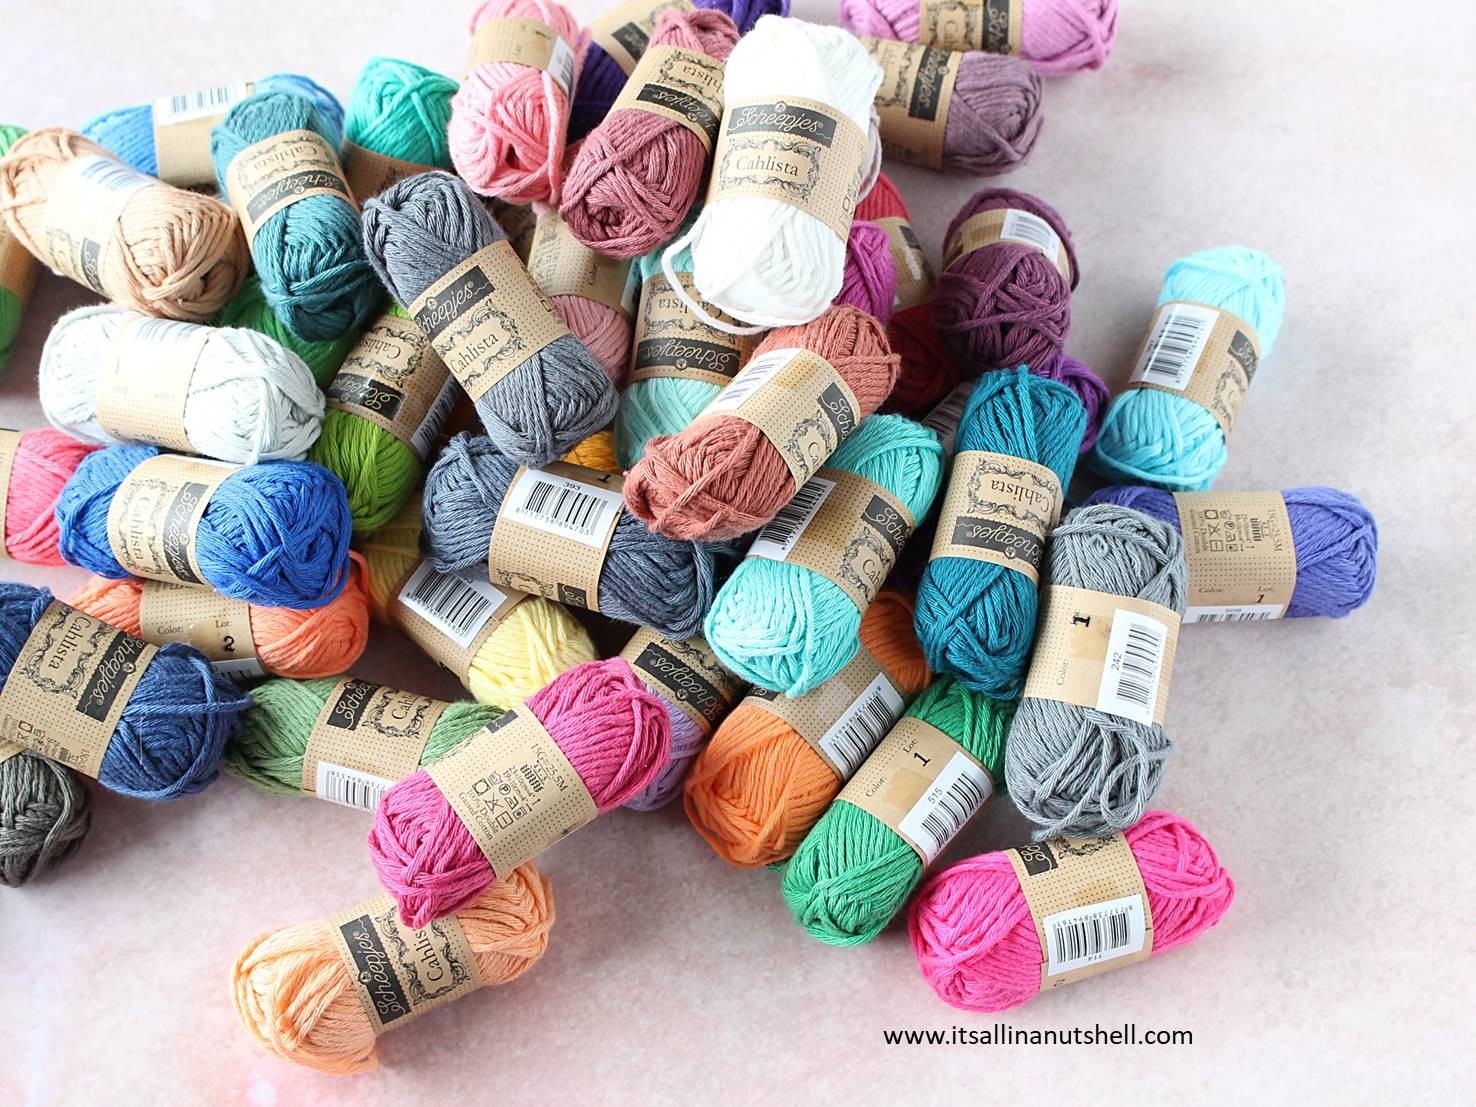 Amazon.com: Katia Amigurumi Yarn Kit (S05 - Greys-Yellows-Teals) | 1107x1476